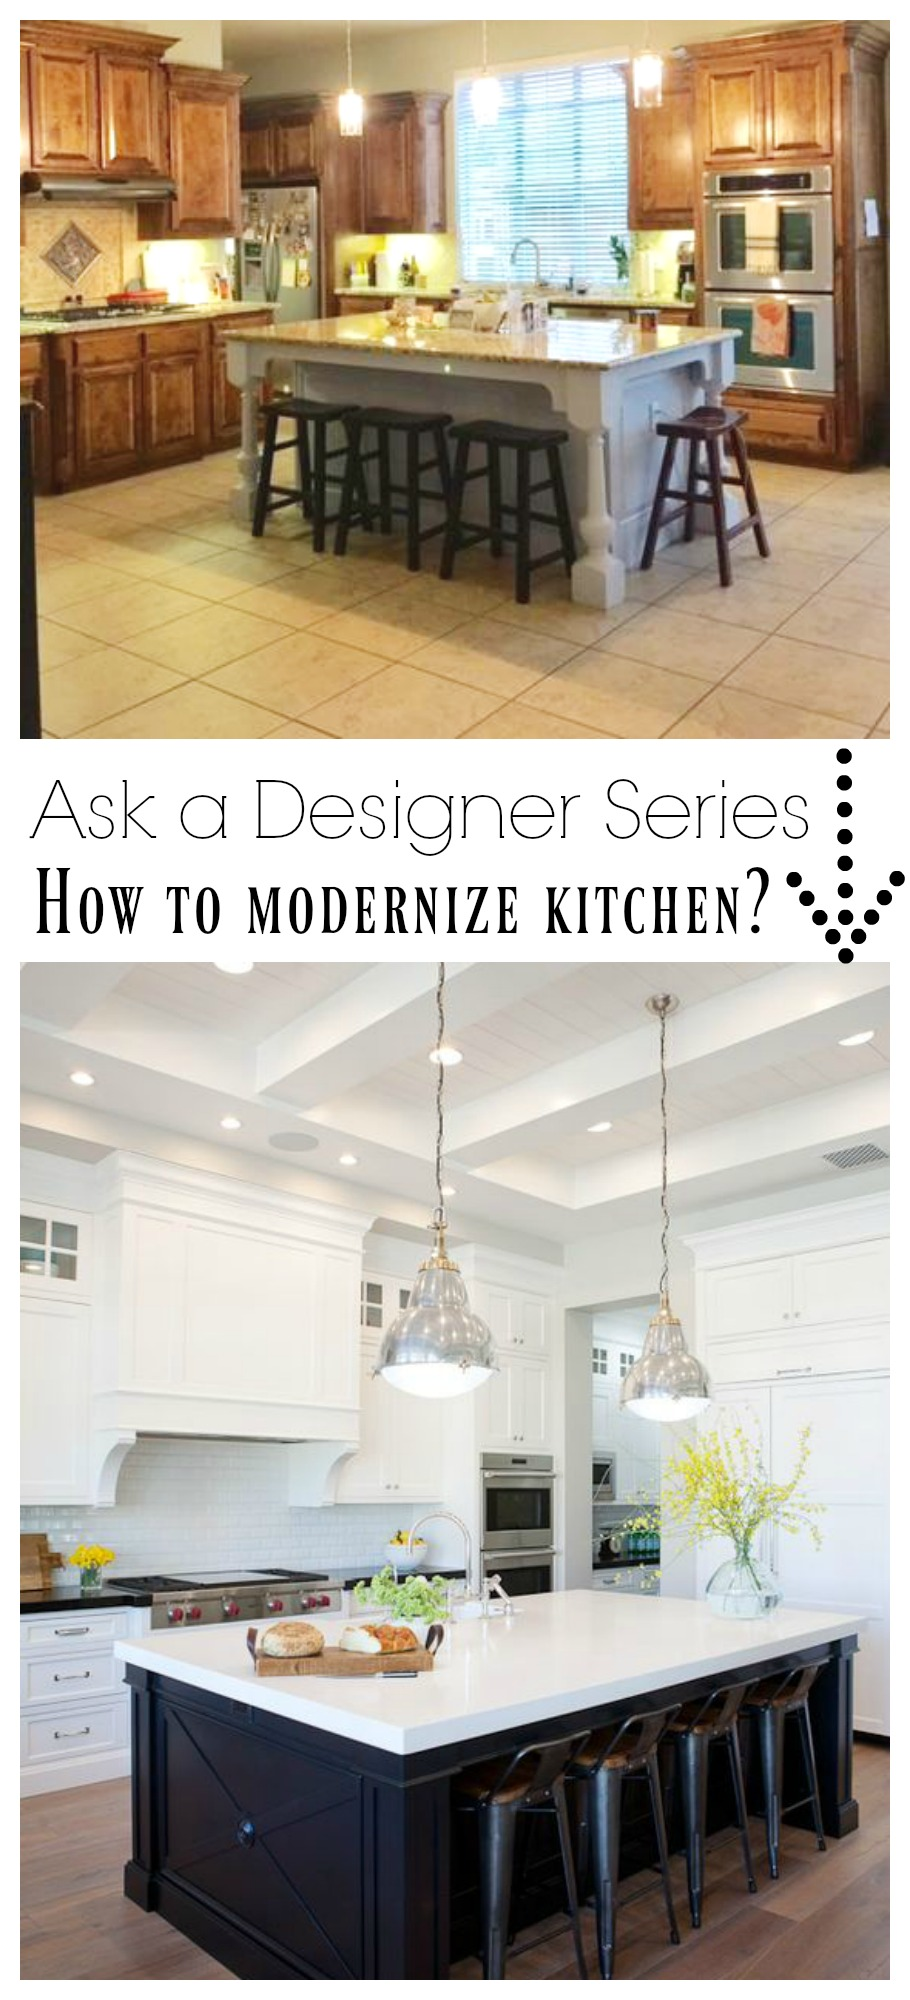 Ask a Designer Series- How to Modernize Dated Kitchen